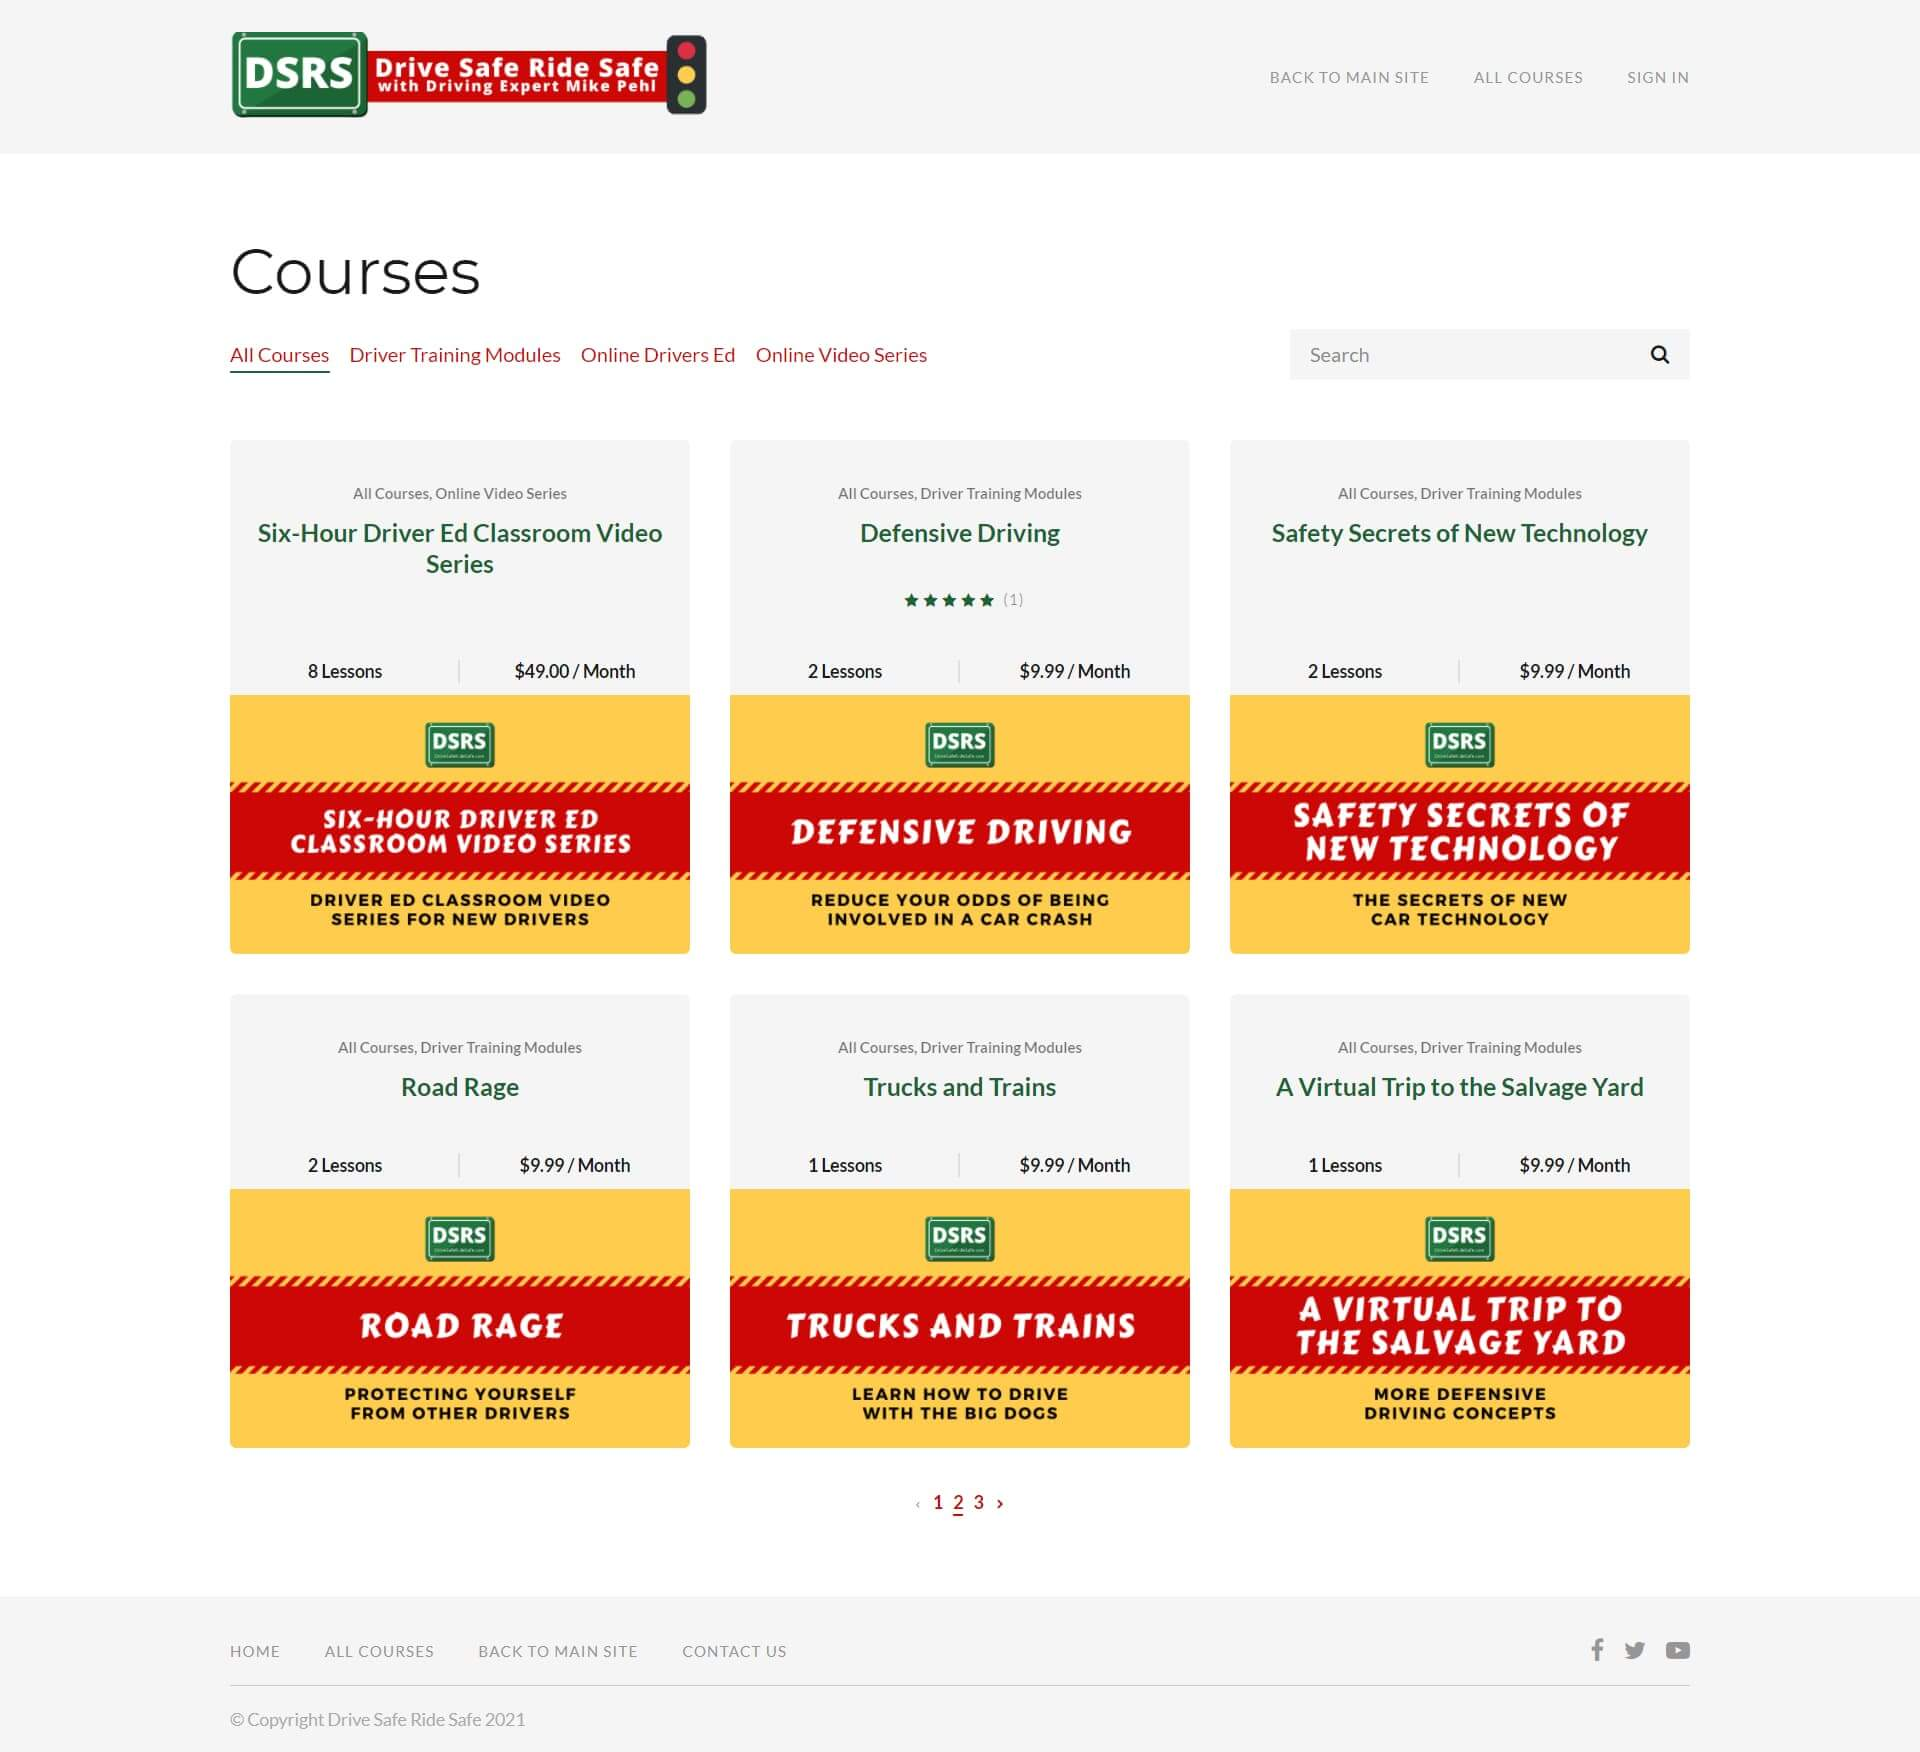 https://courses.drivesaferidesafe.com/collections?page=2